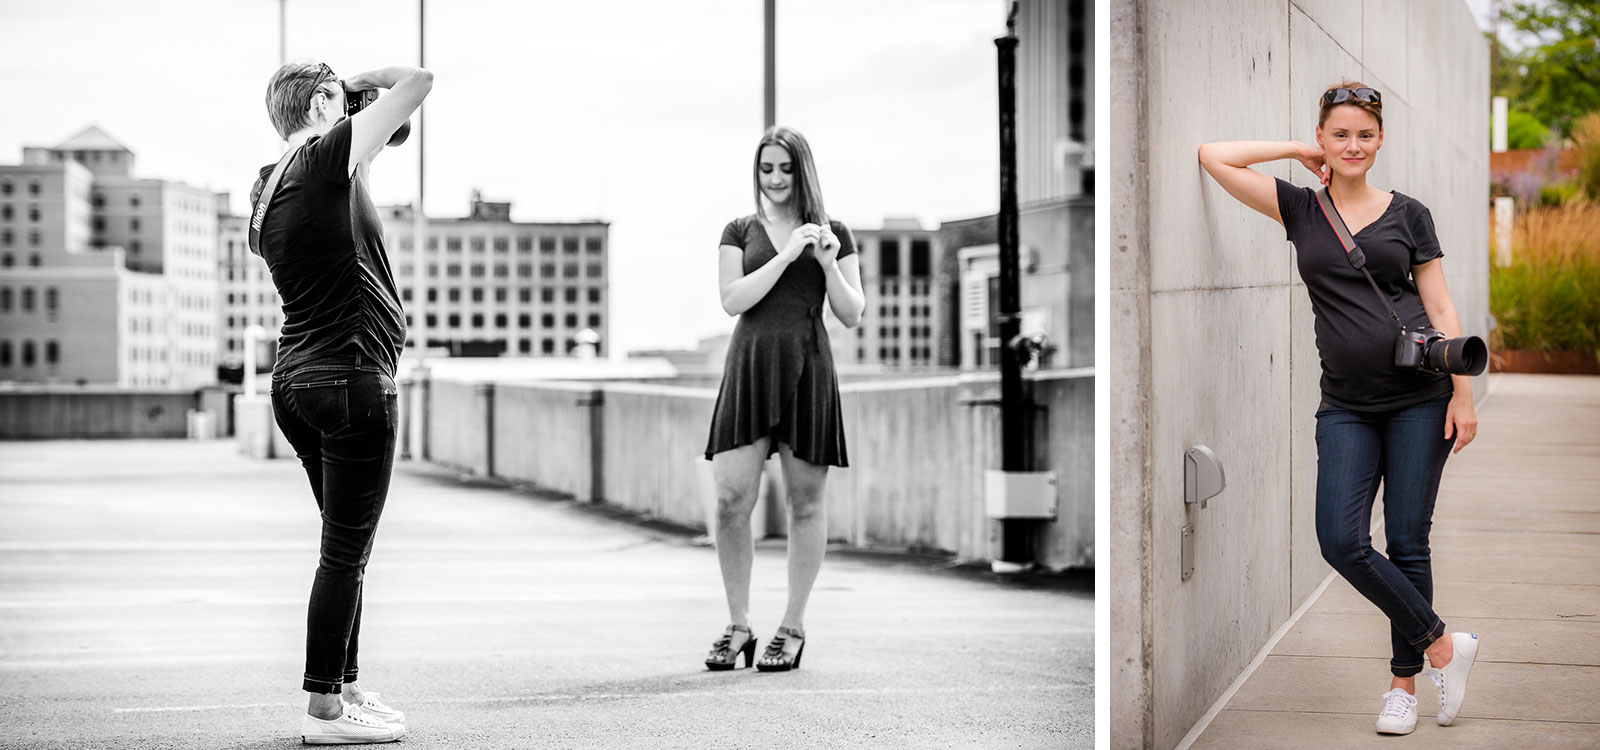 Eric_and_Christy_Photography_Blog_Brenna_Dray_Grad-35-36